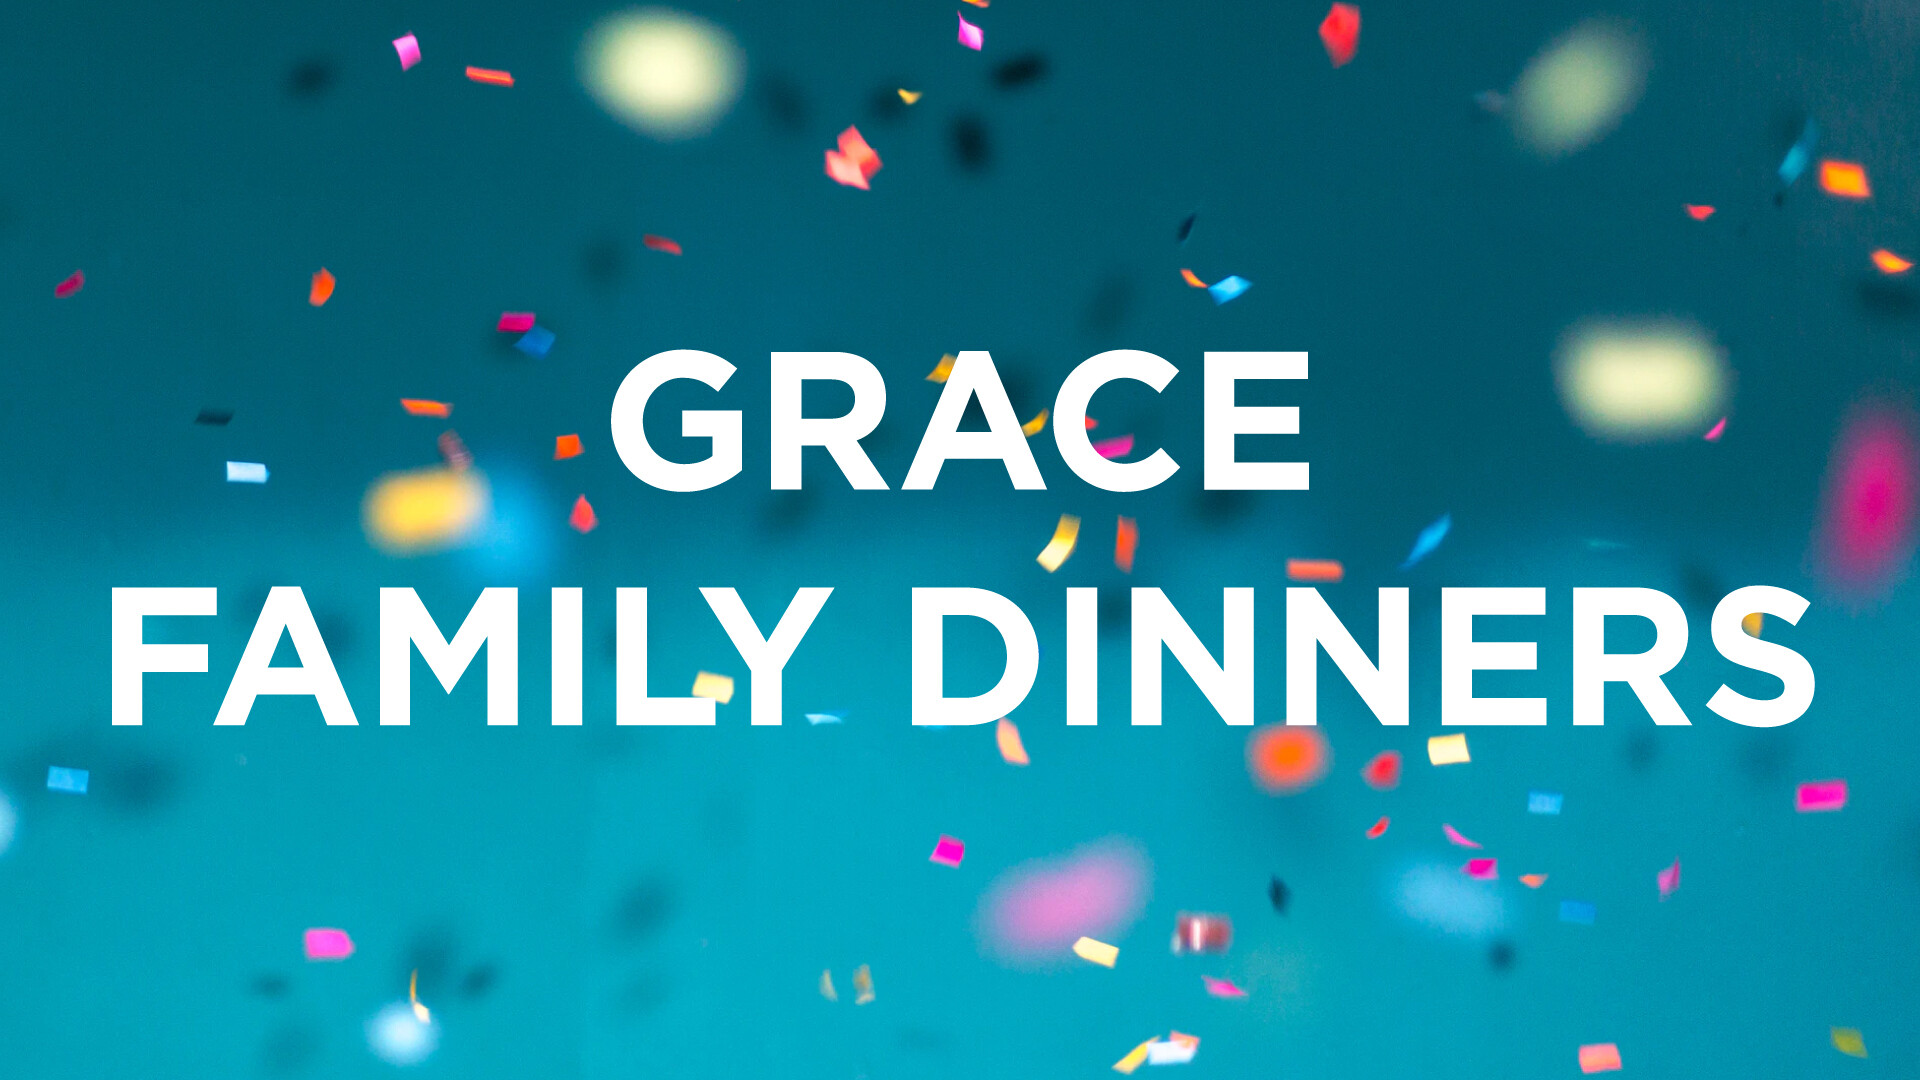 Grace Family Dinners - Wednesdays 5:30 PM